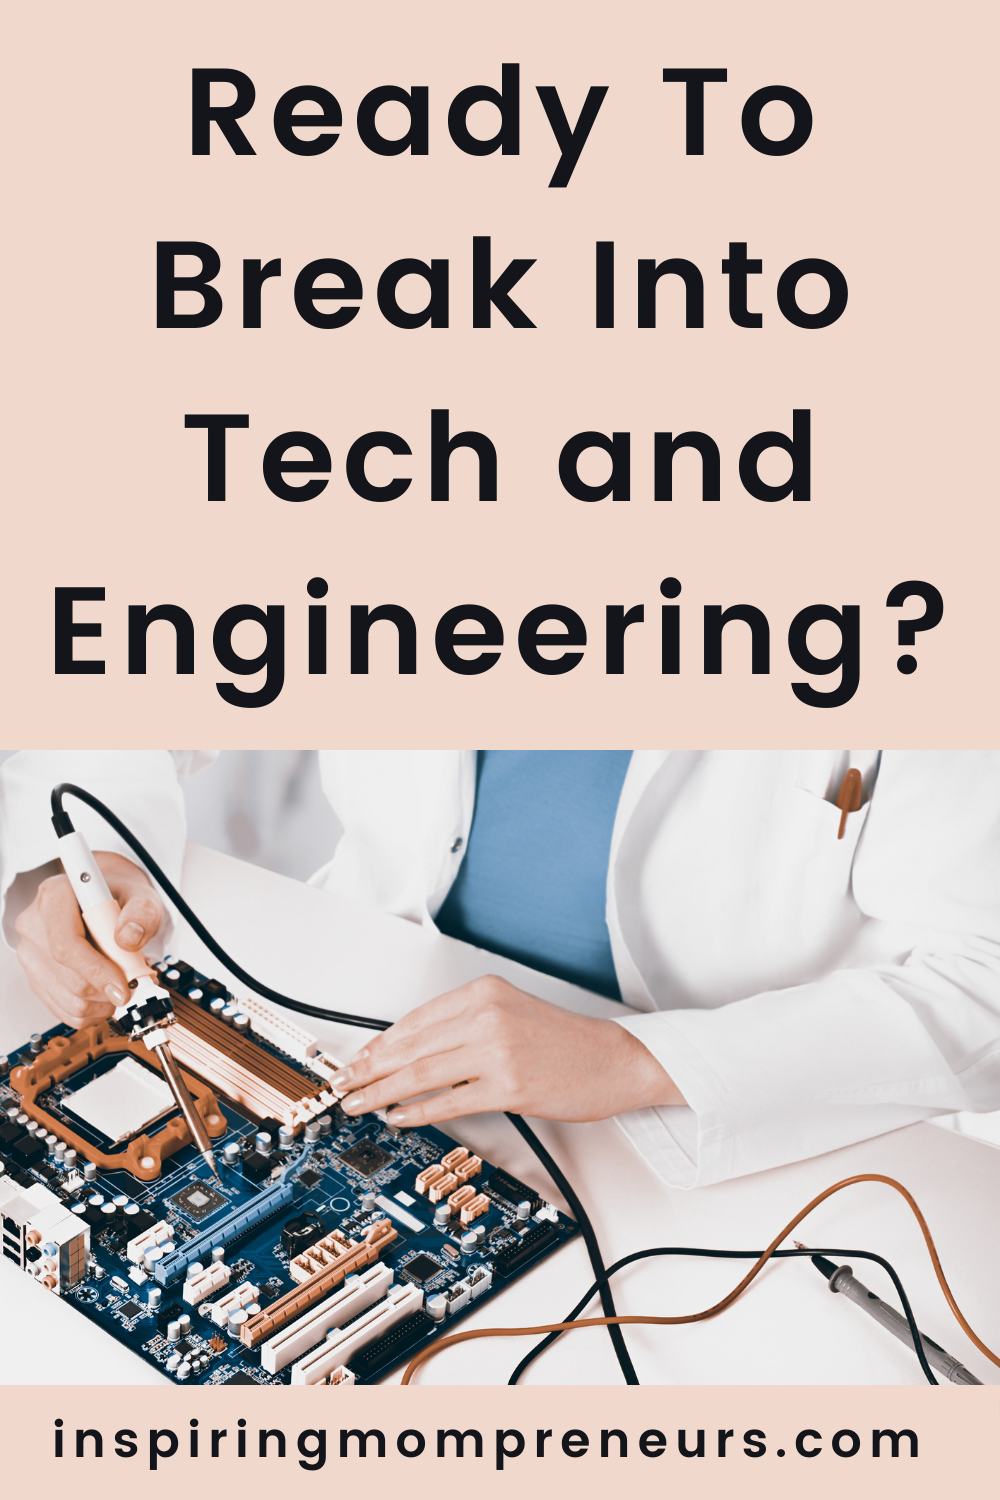 Are you ready to break into tech and engineering? Both the tech and engineering industries employ millions across the globe - it is an exciting place to be. #tech #engineering #education